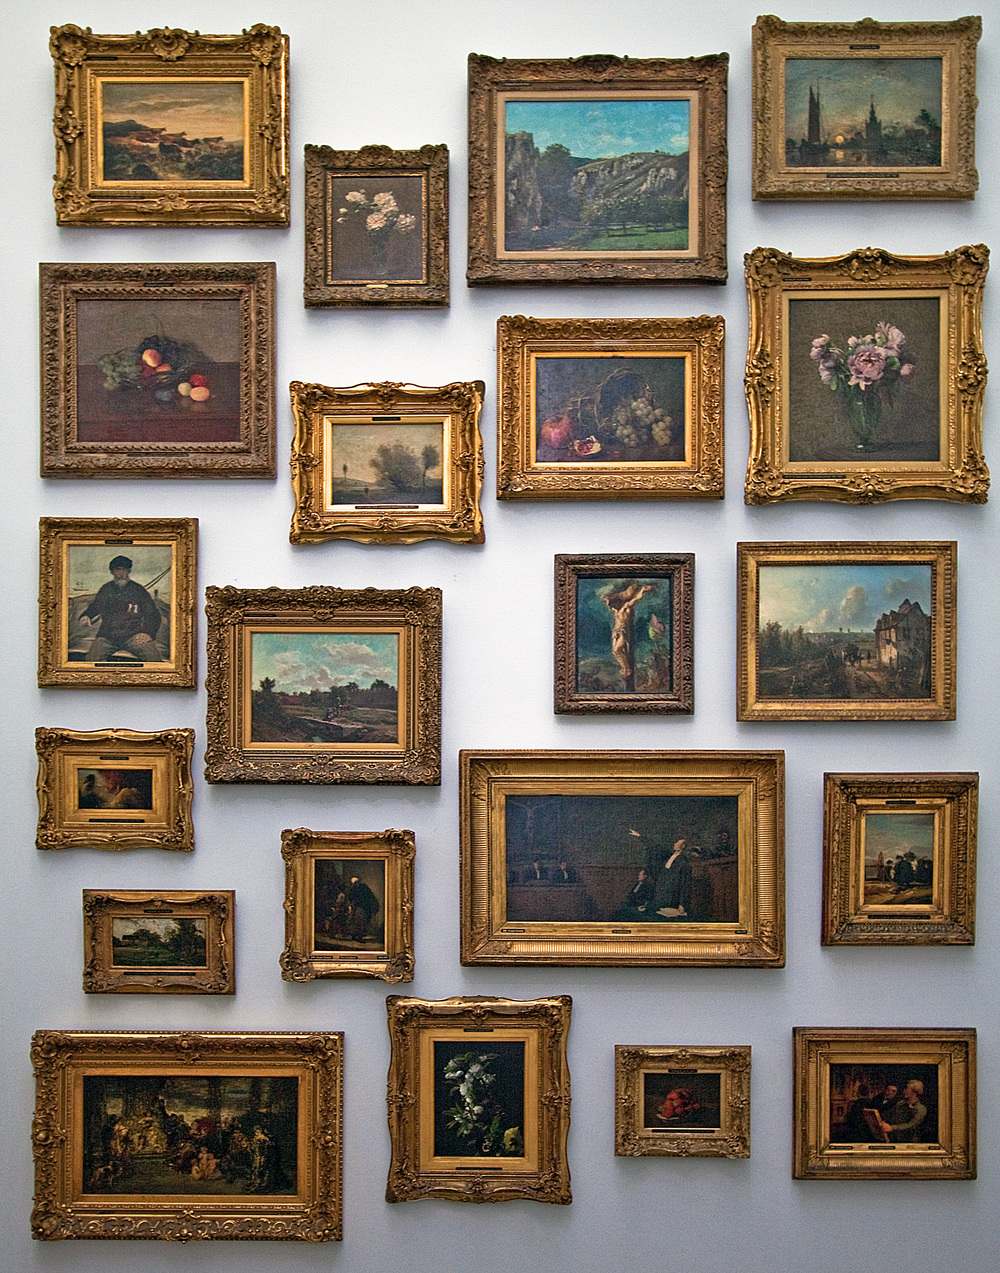 A guide to framing part i a brief history of framing otoole a style typical in the 15th and 16th centuries was broad flat often gilded frames with details of birds fruit military trophies faces jeuxipadfo Images